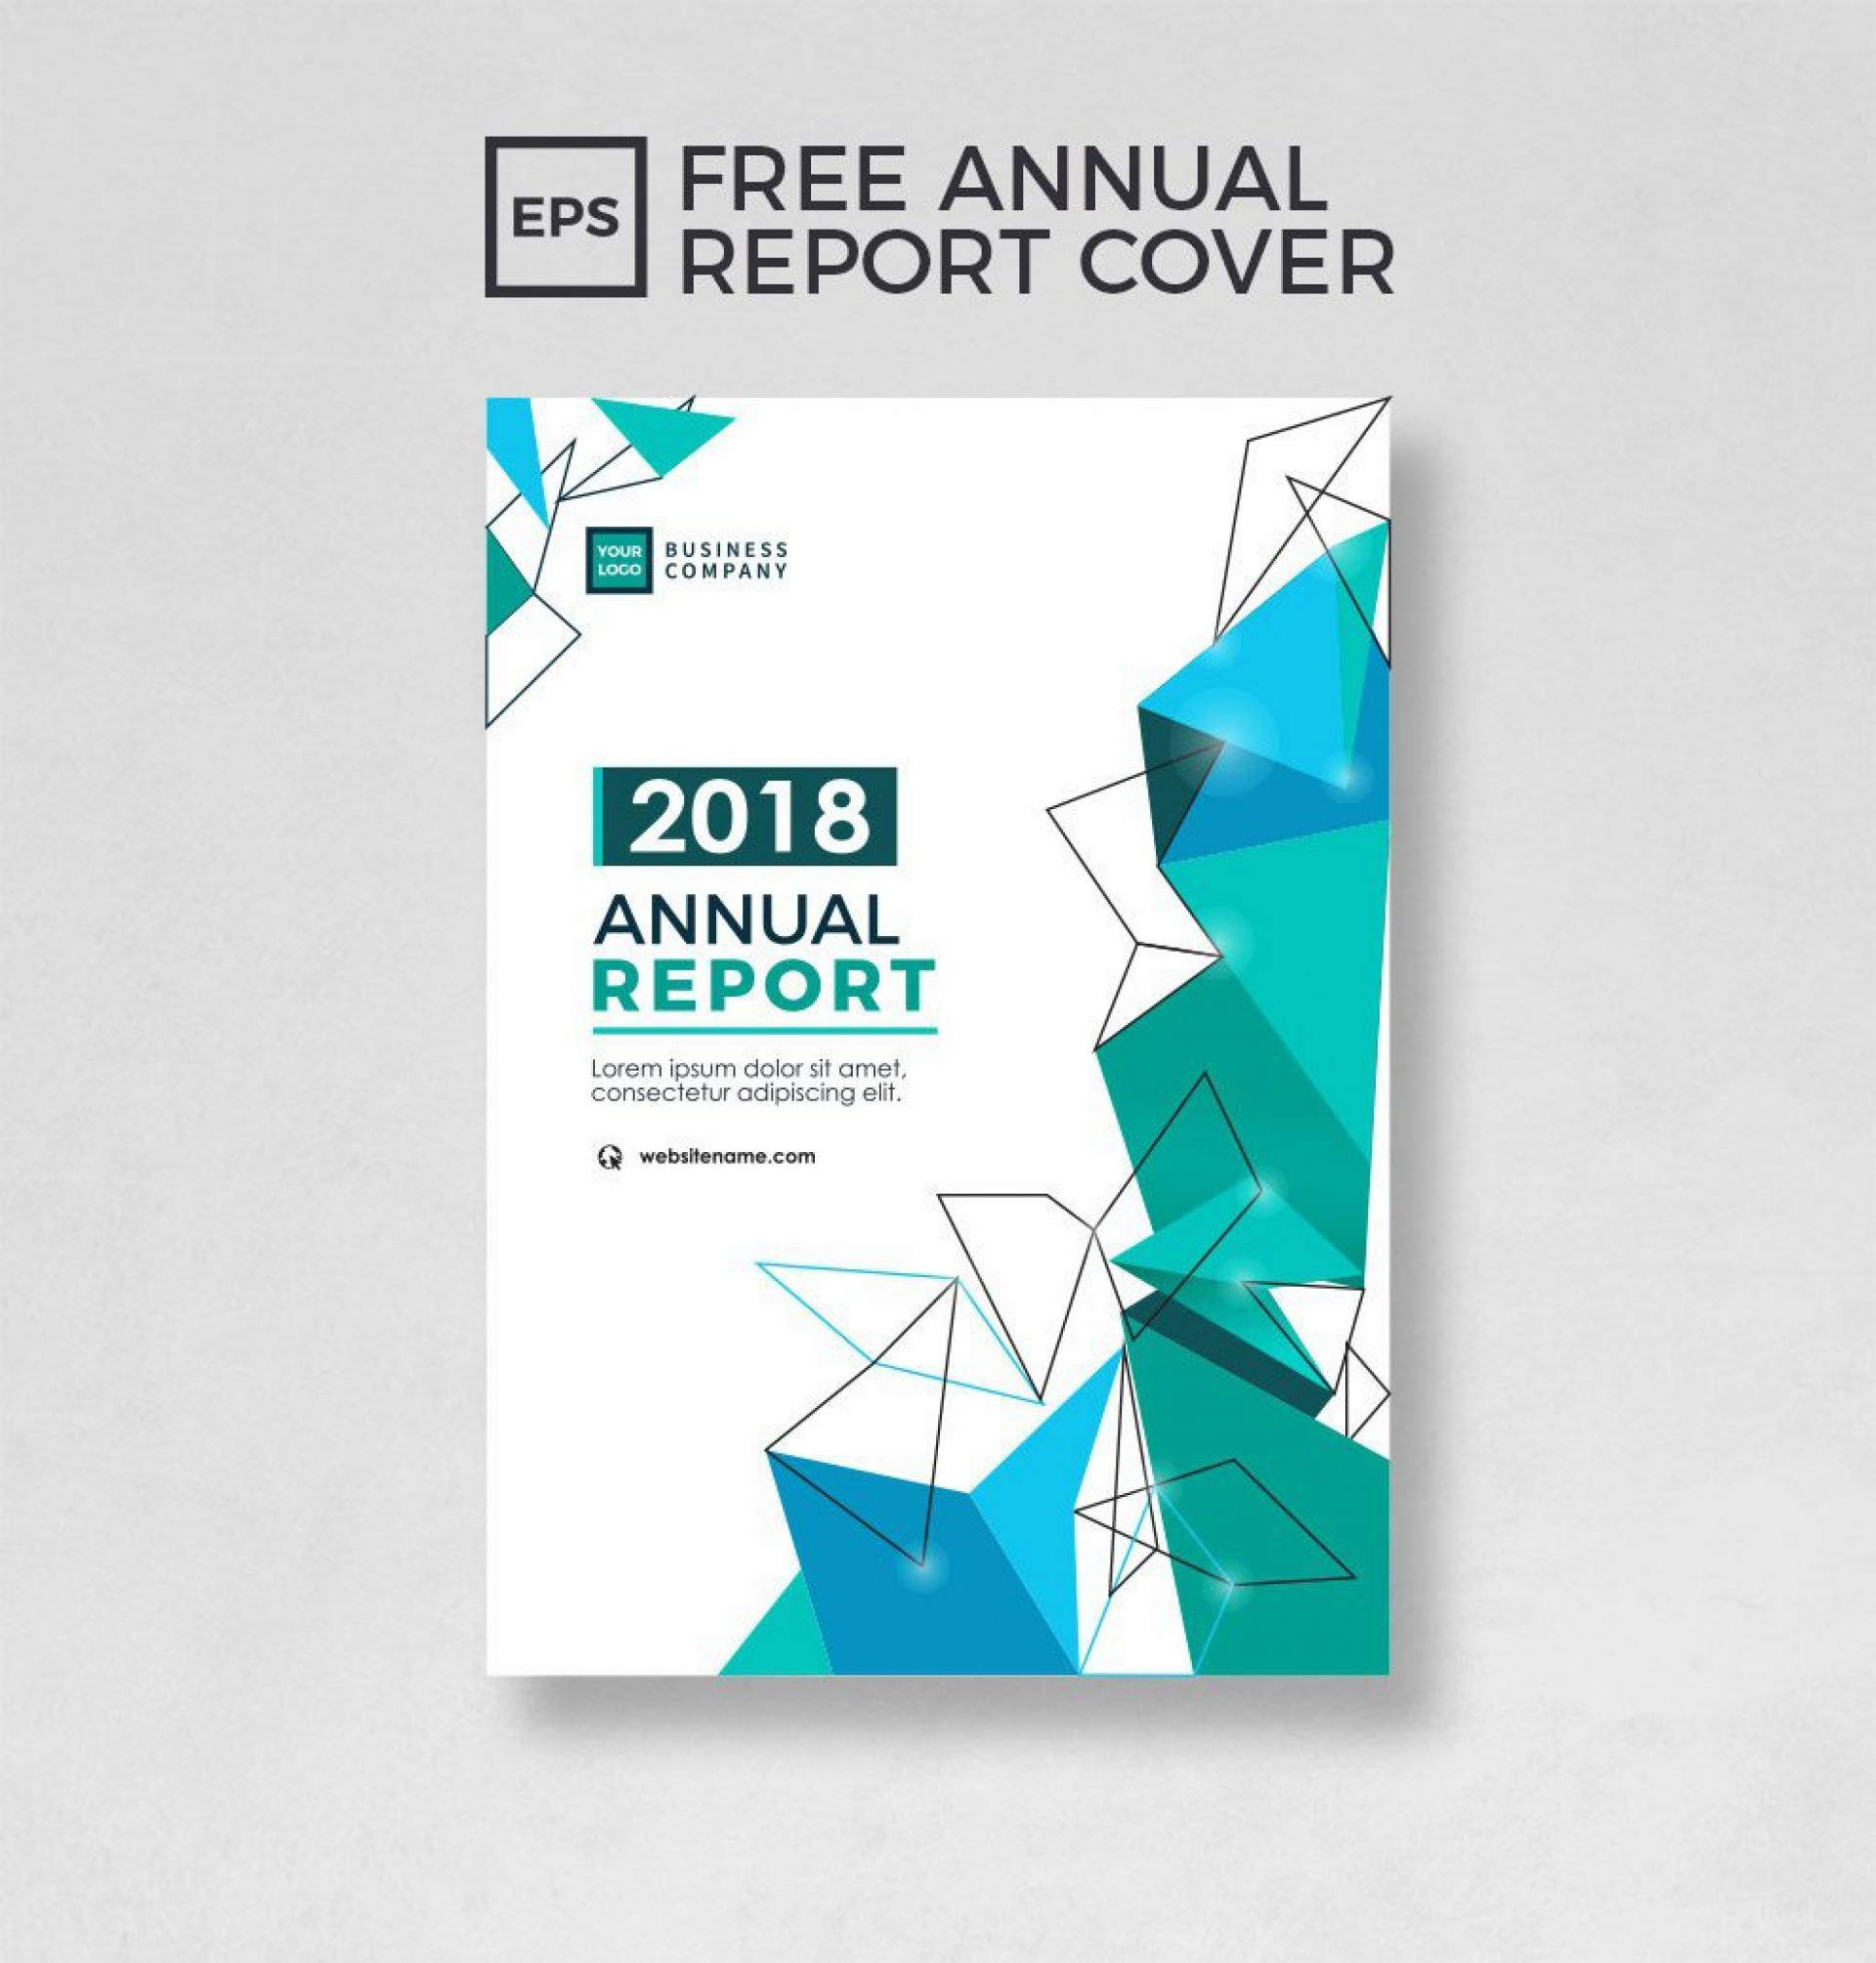 000 Exceptional Free Download Annual Report Cover Design Template High Definition  In Word Page1920